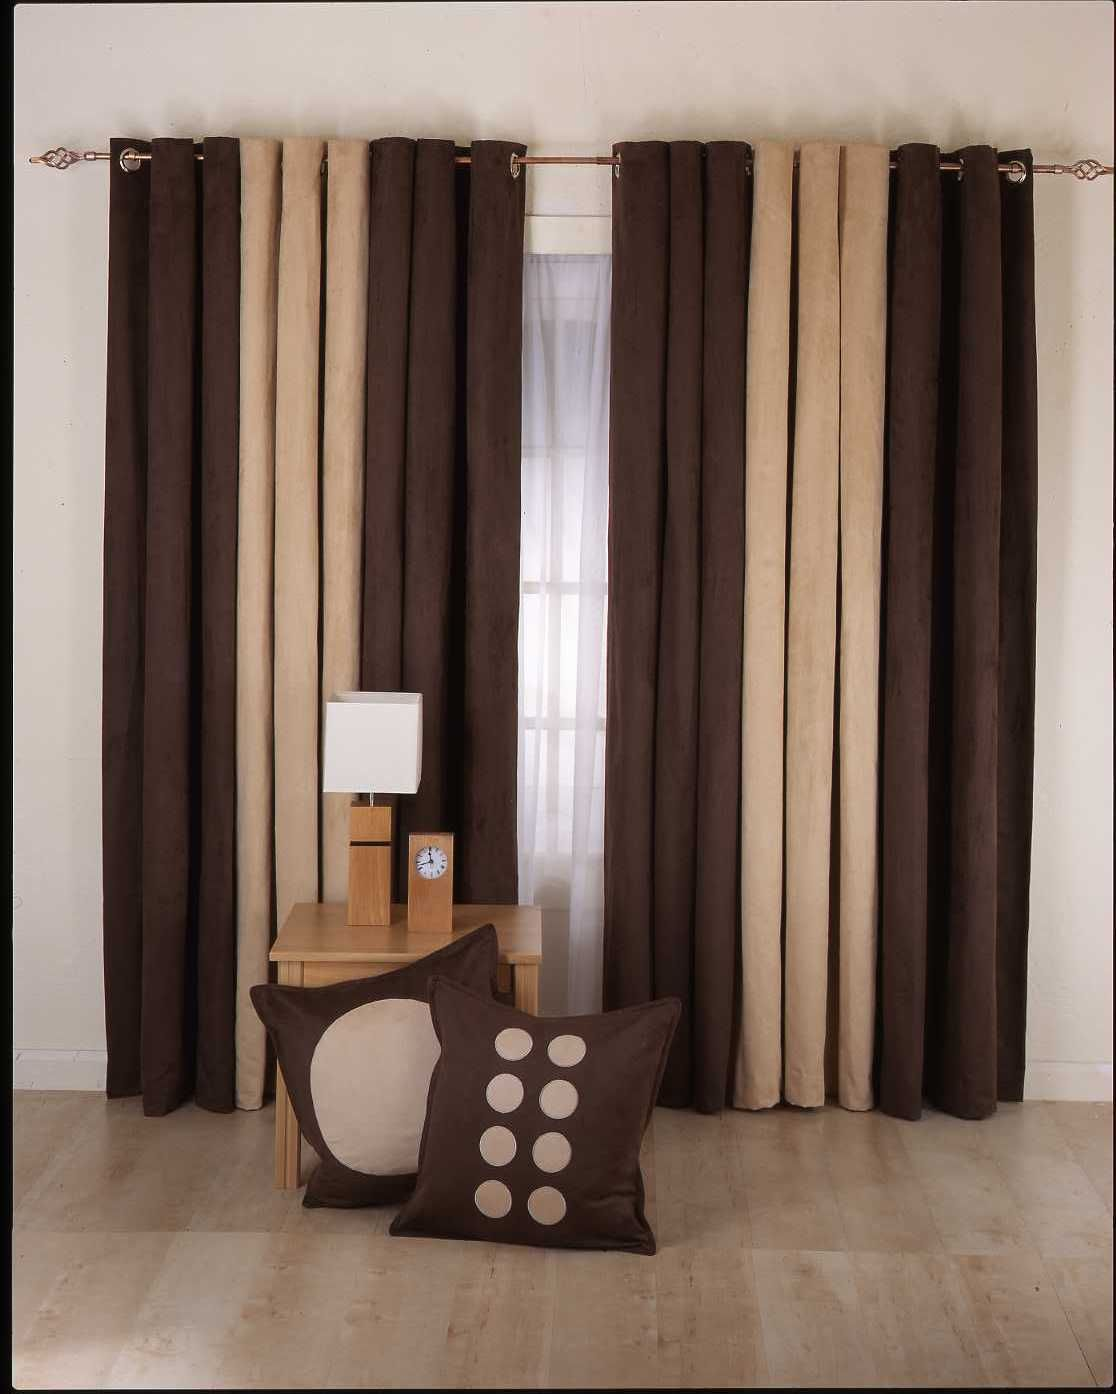 Modern Living Room Curtains Red Brown And Black Ideas 20 Hottest Curtain Designs For 2018 Interior Design Decor 2017 Home Should Always Be The Place Where You Start